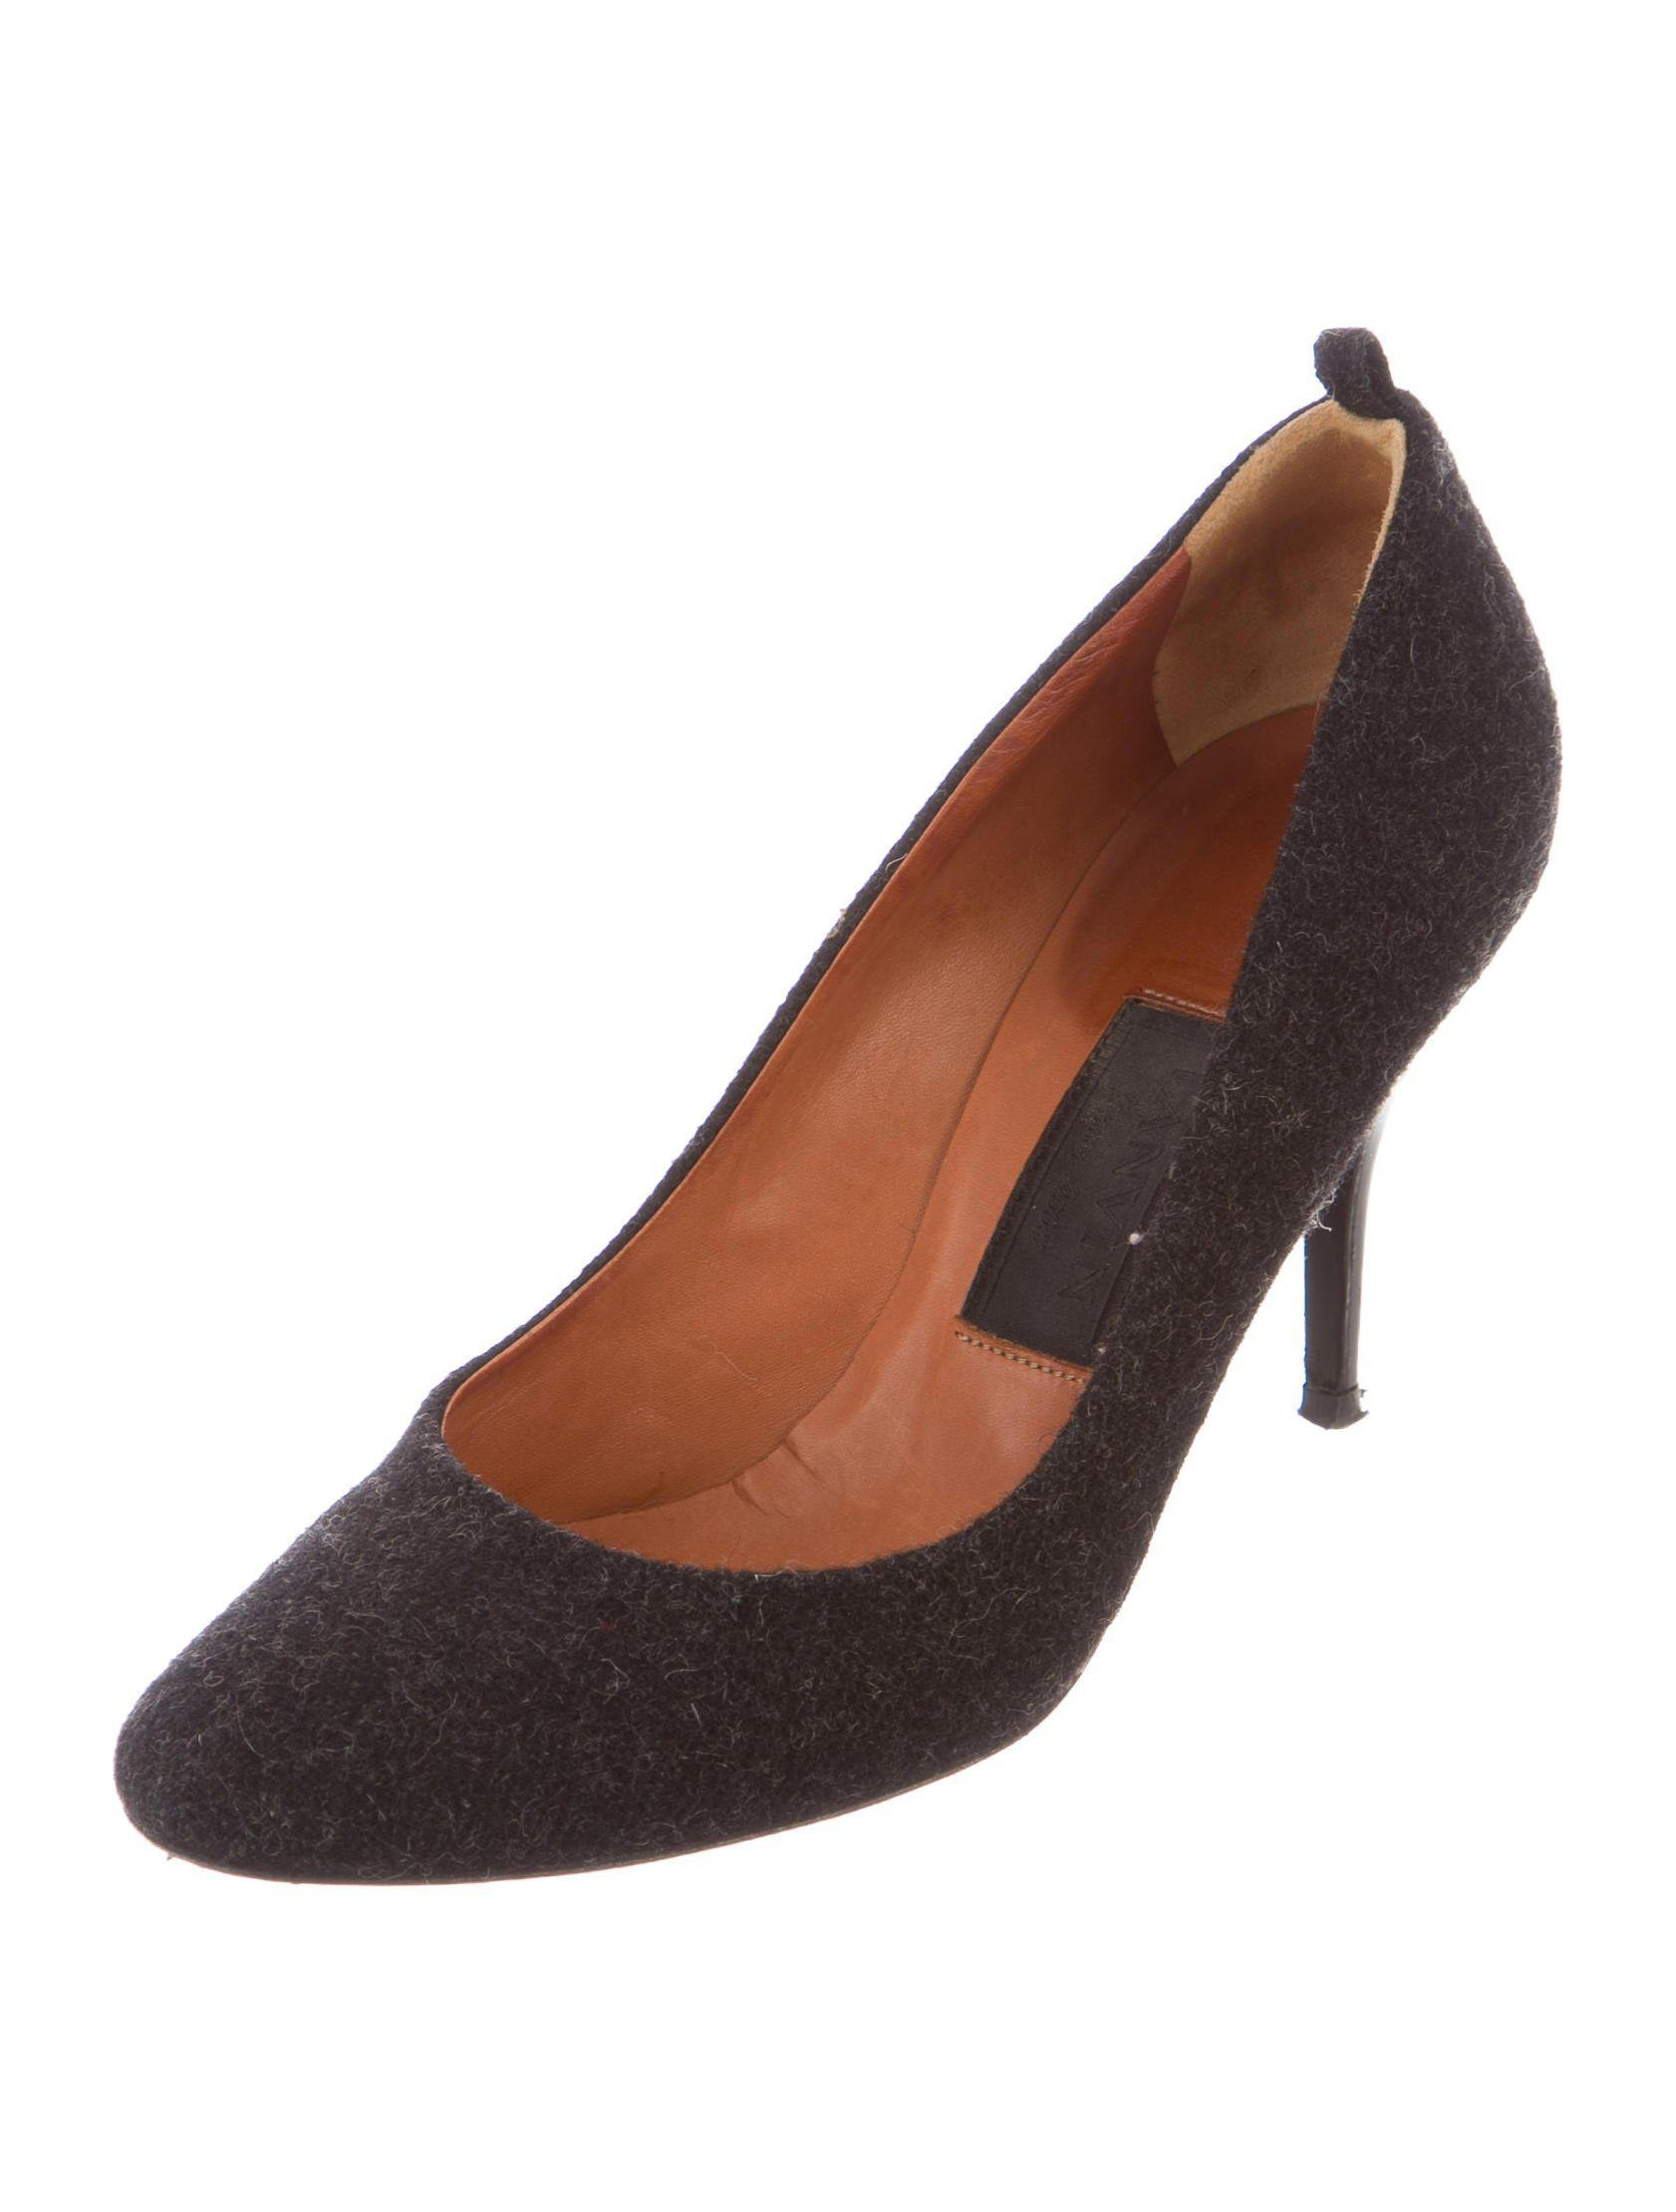 Lanvin Felt Round-Toe Pumps clearance shop offer outlet lowest price cheap sale pre order cheap sale 100% guaranteed very cheap cheap online UsMYZyArPg